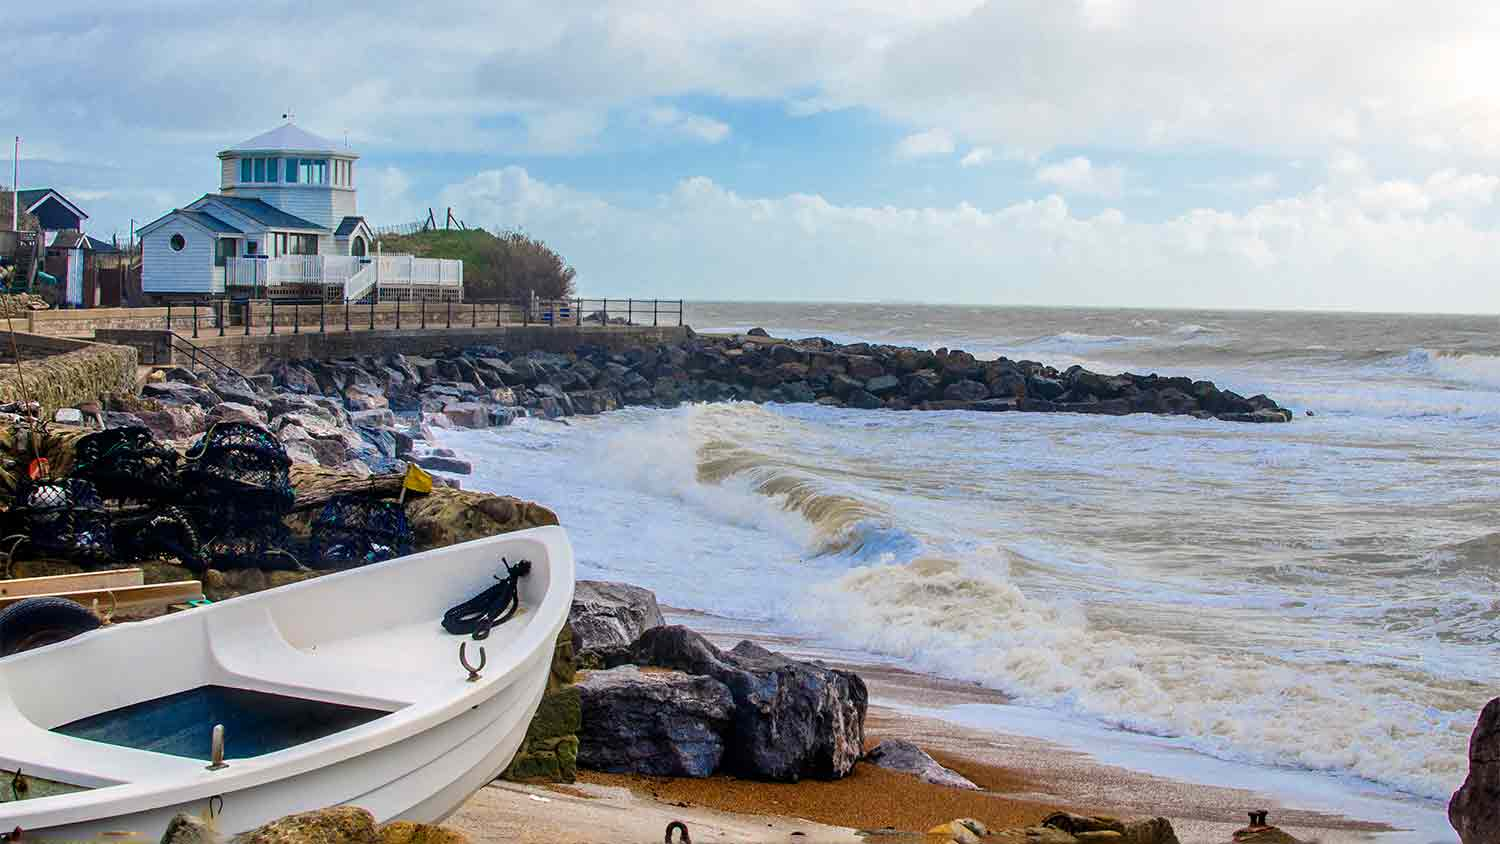 A bay with rough sea waves crashing down. A white dinghy is pointing out to sea but is safely on land